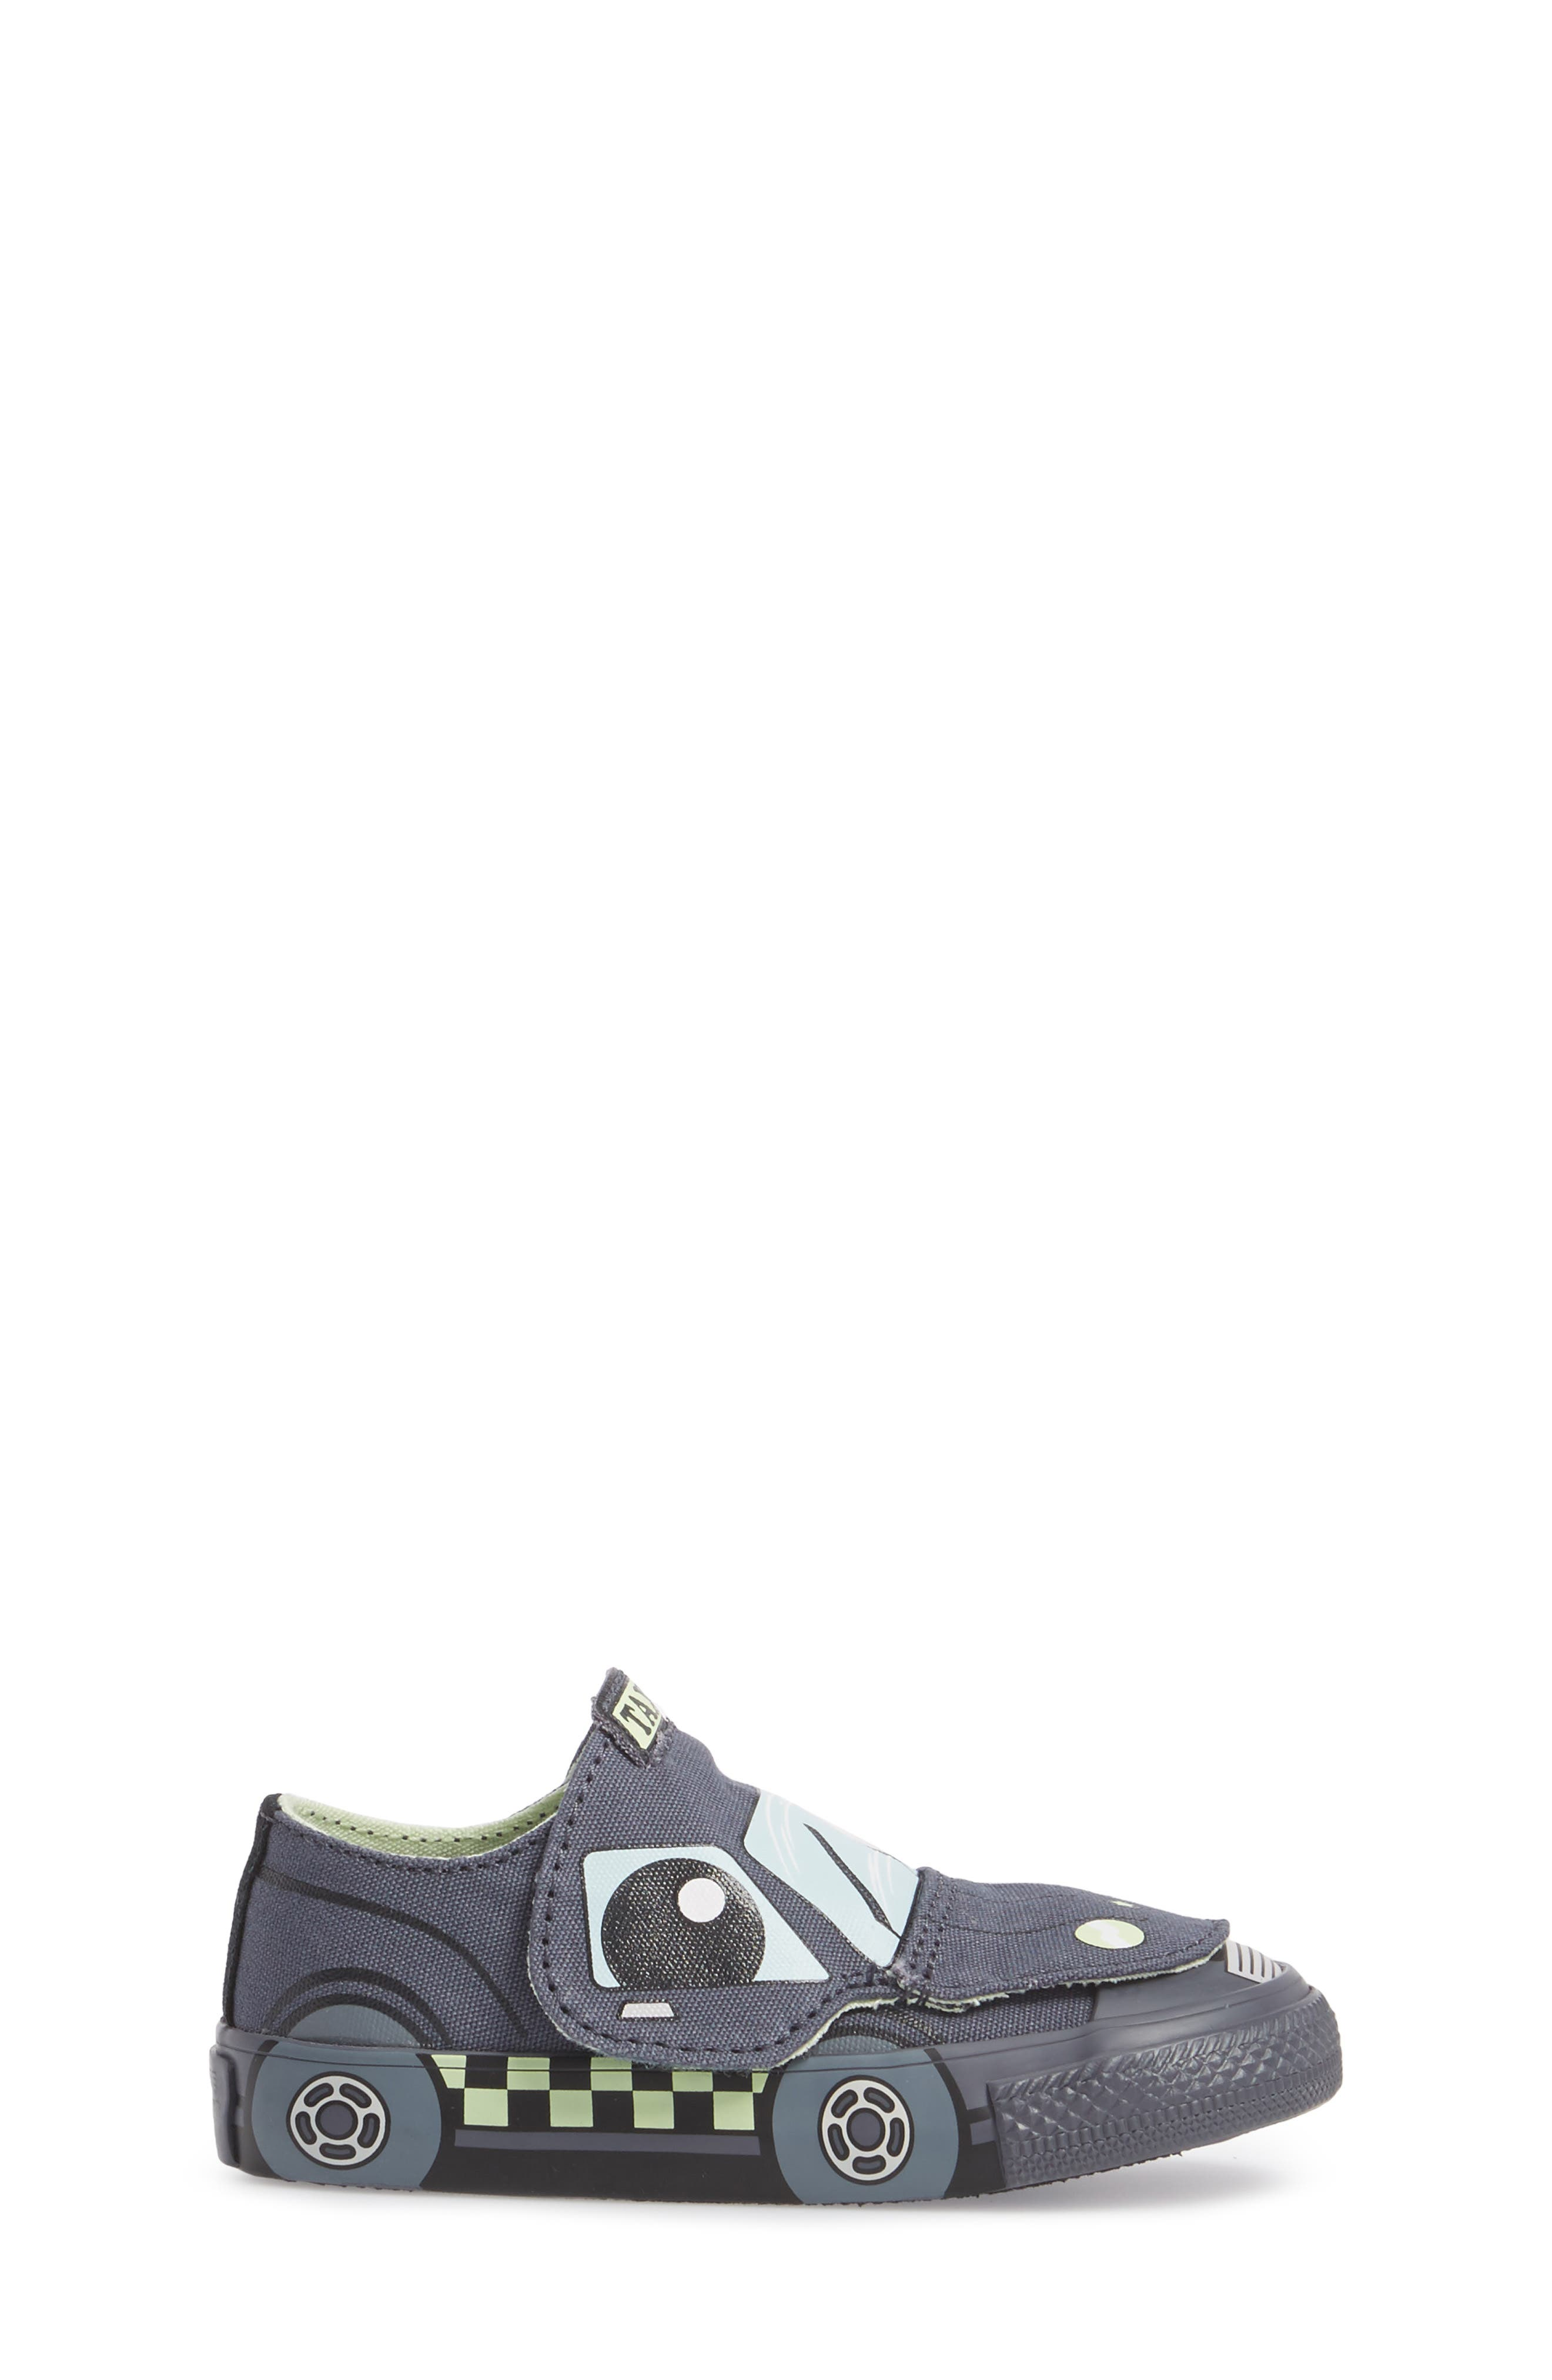 Chuck Taylor<sup>®</sup> All Star<sup>®</sup> Creatures Slip-On Sneaker,                             Alternate thumbnail 8, color,